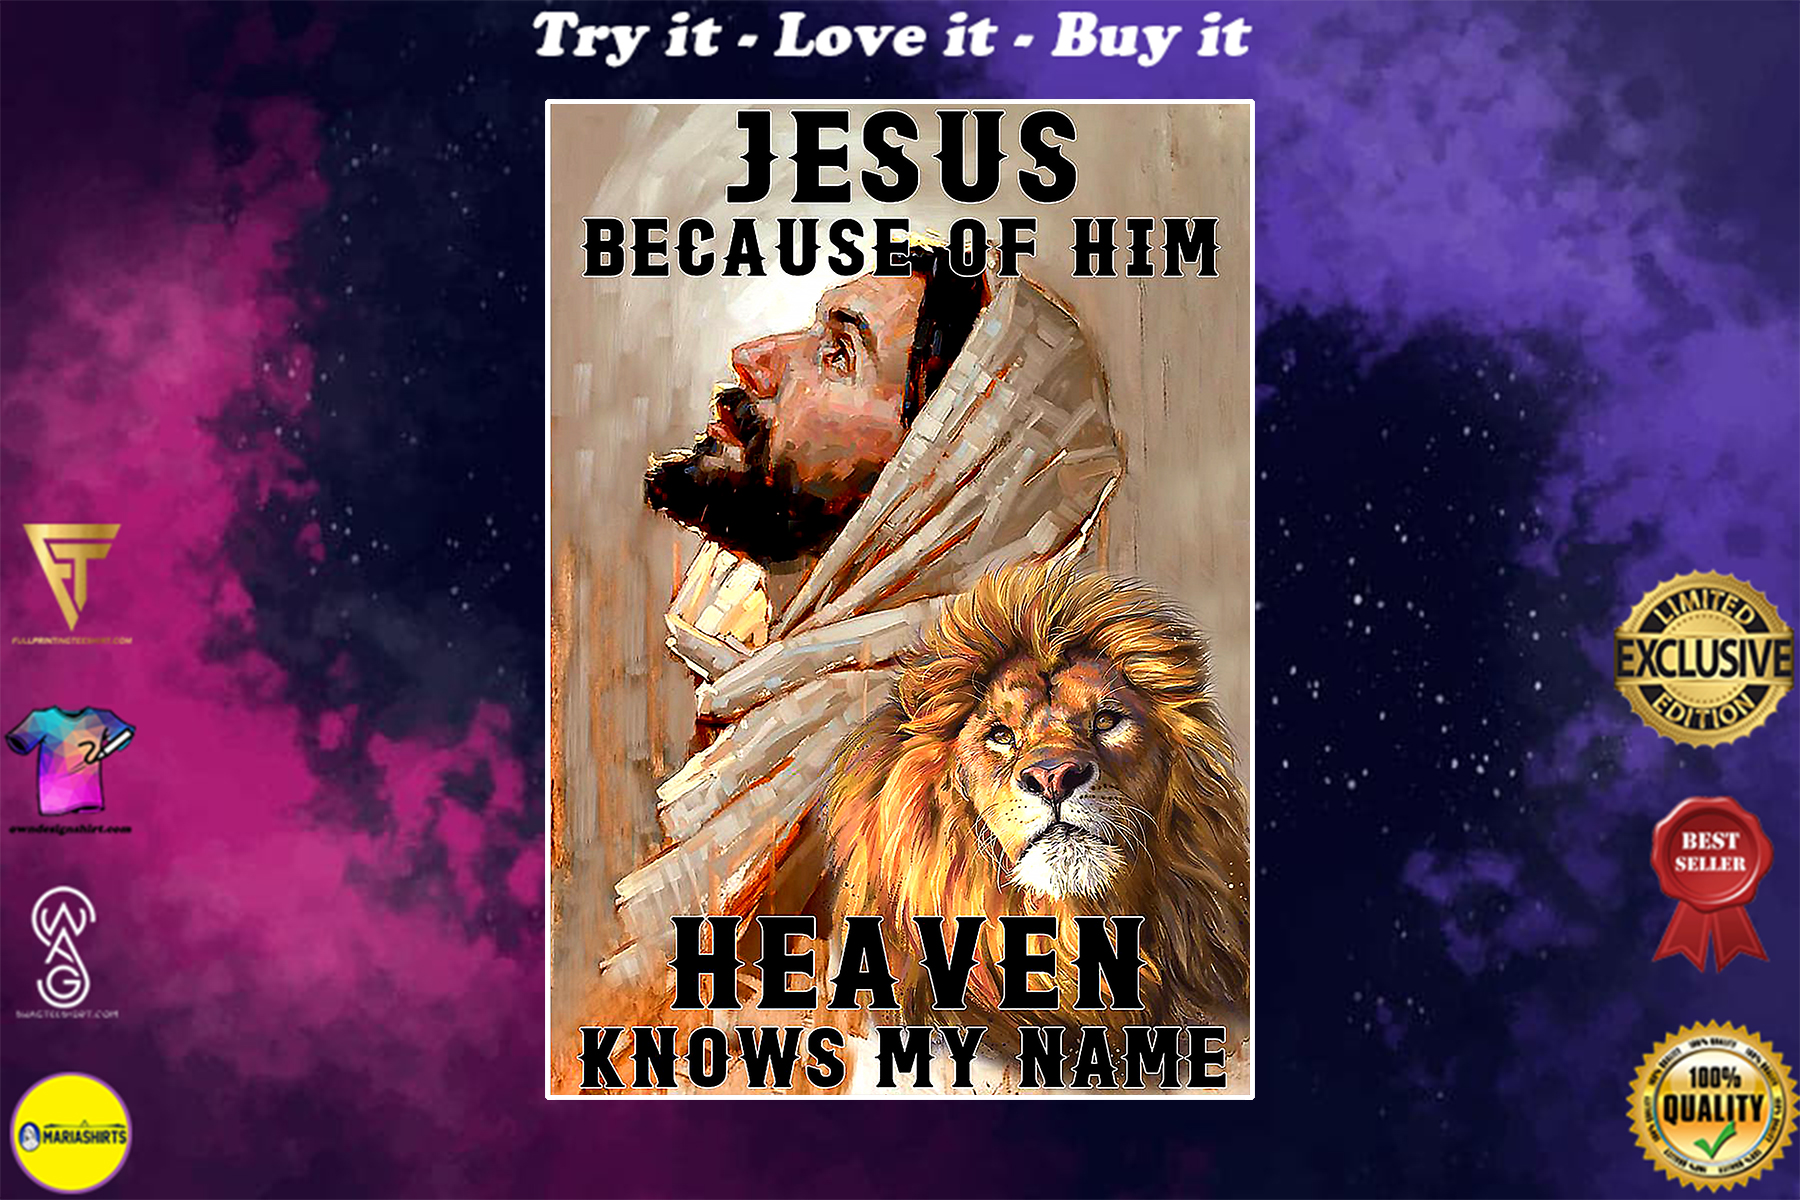 Jesus because of him heaven knows my name lion poster